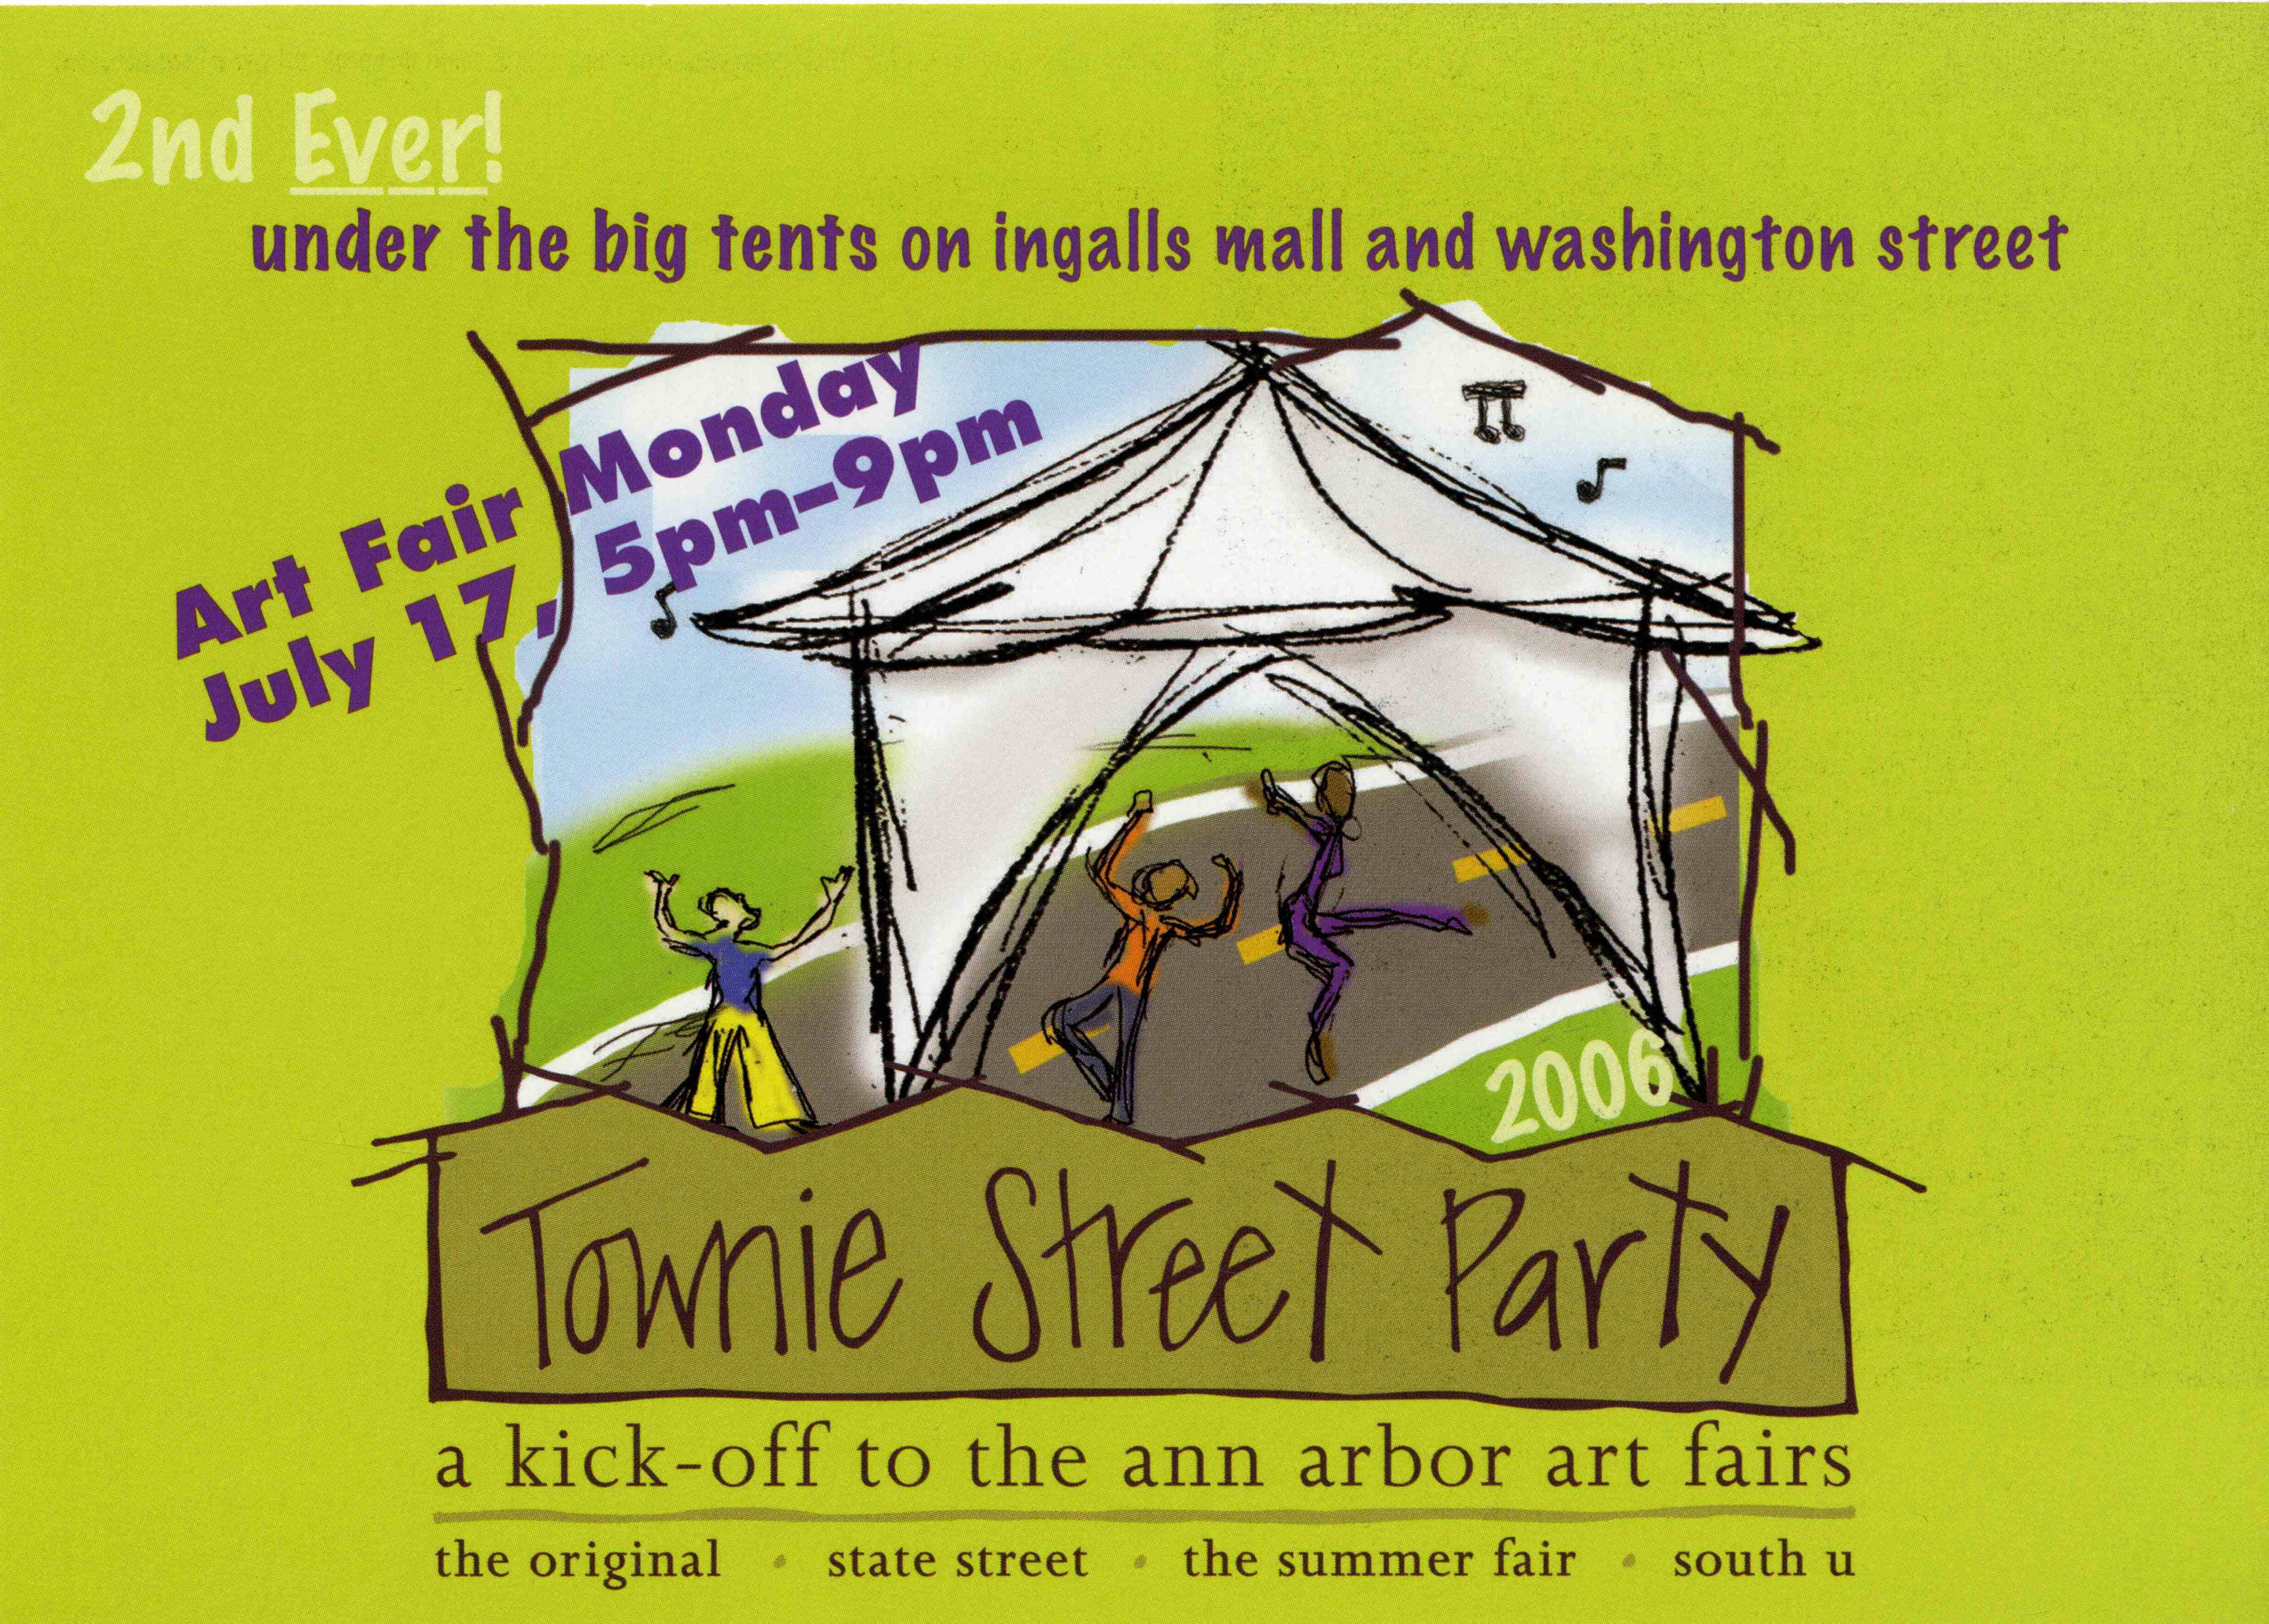 2nd EVER!  Townie Street Party image